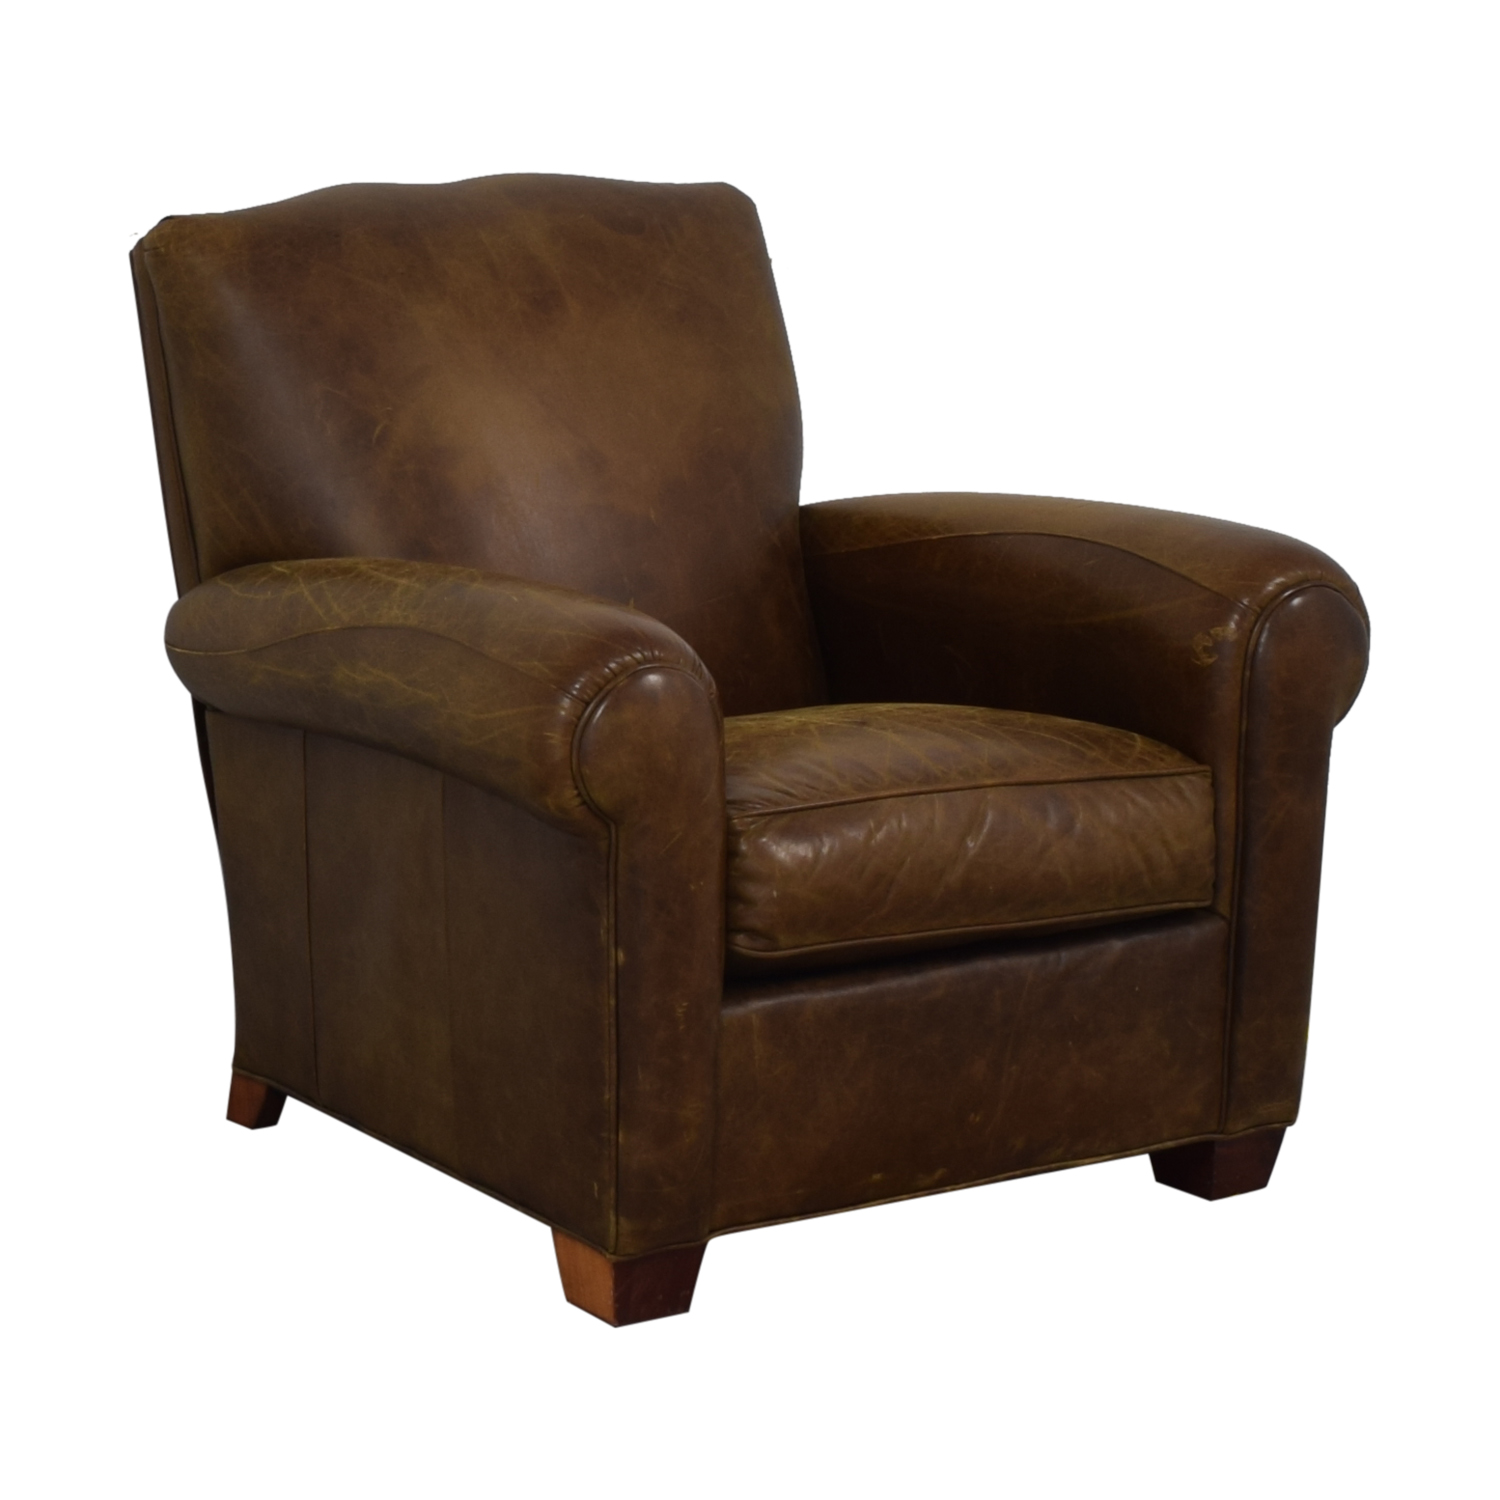 Zagaroli Classics Zagaroli Classics Leather Club Reclining Chair dimensions